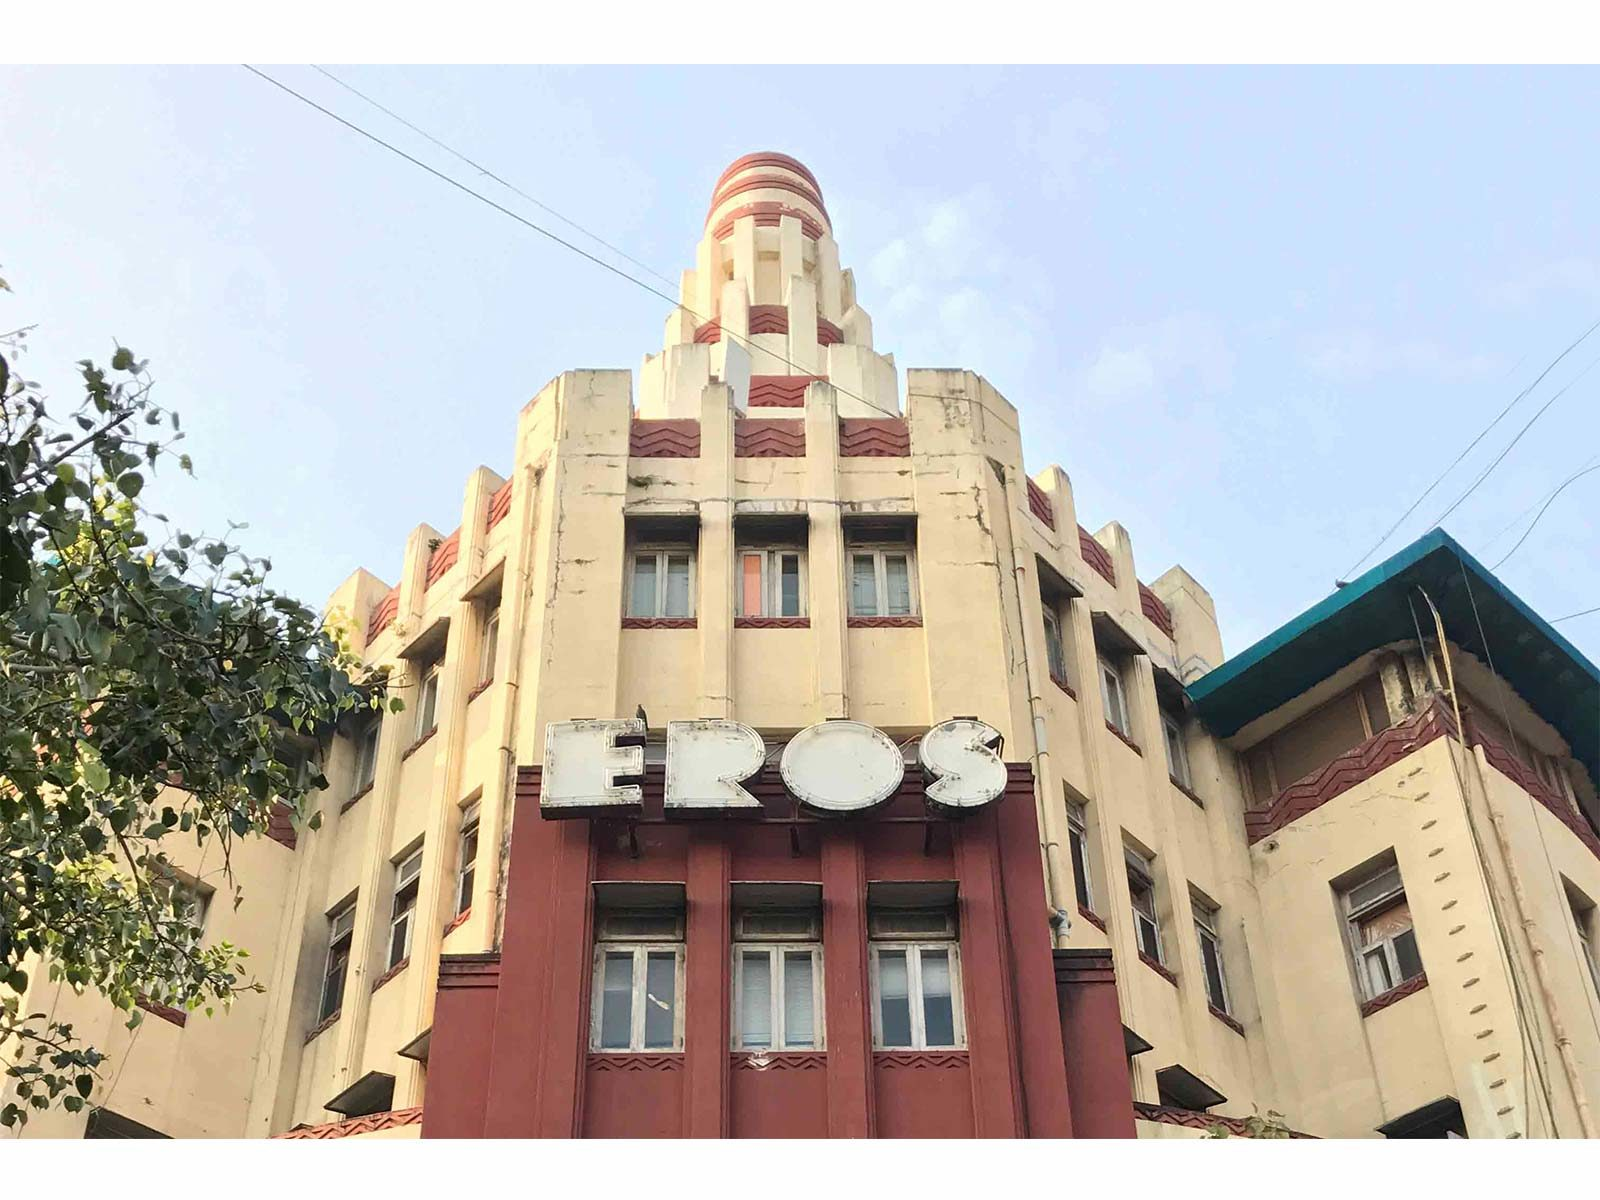 Eros Cinema, Oval Maidan © Art Deco Mumbai Trust